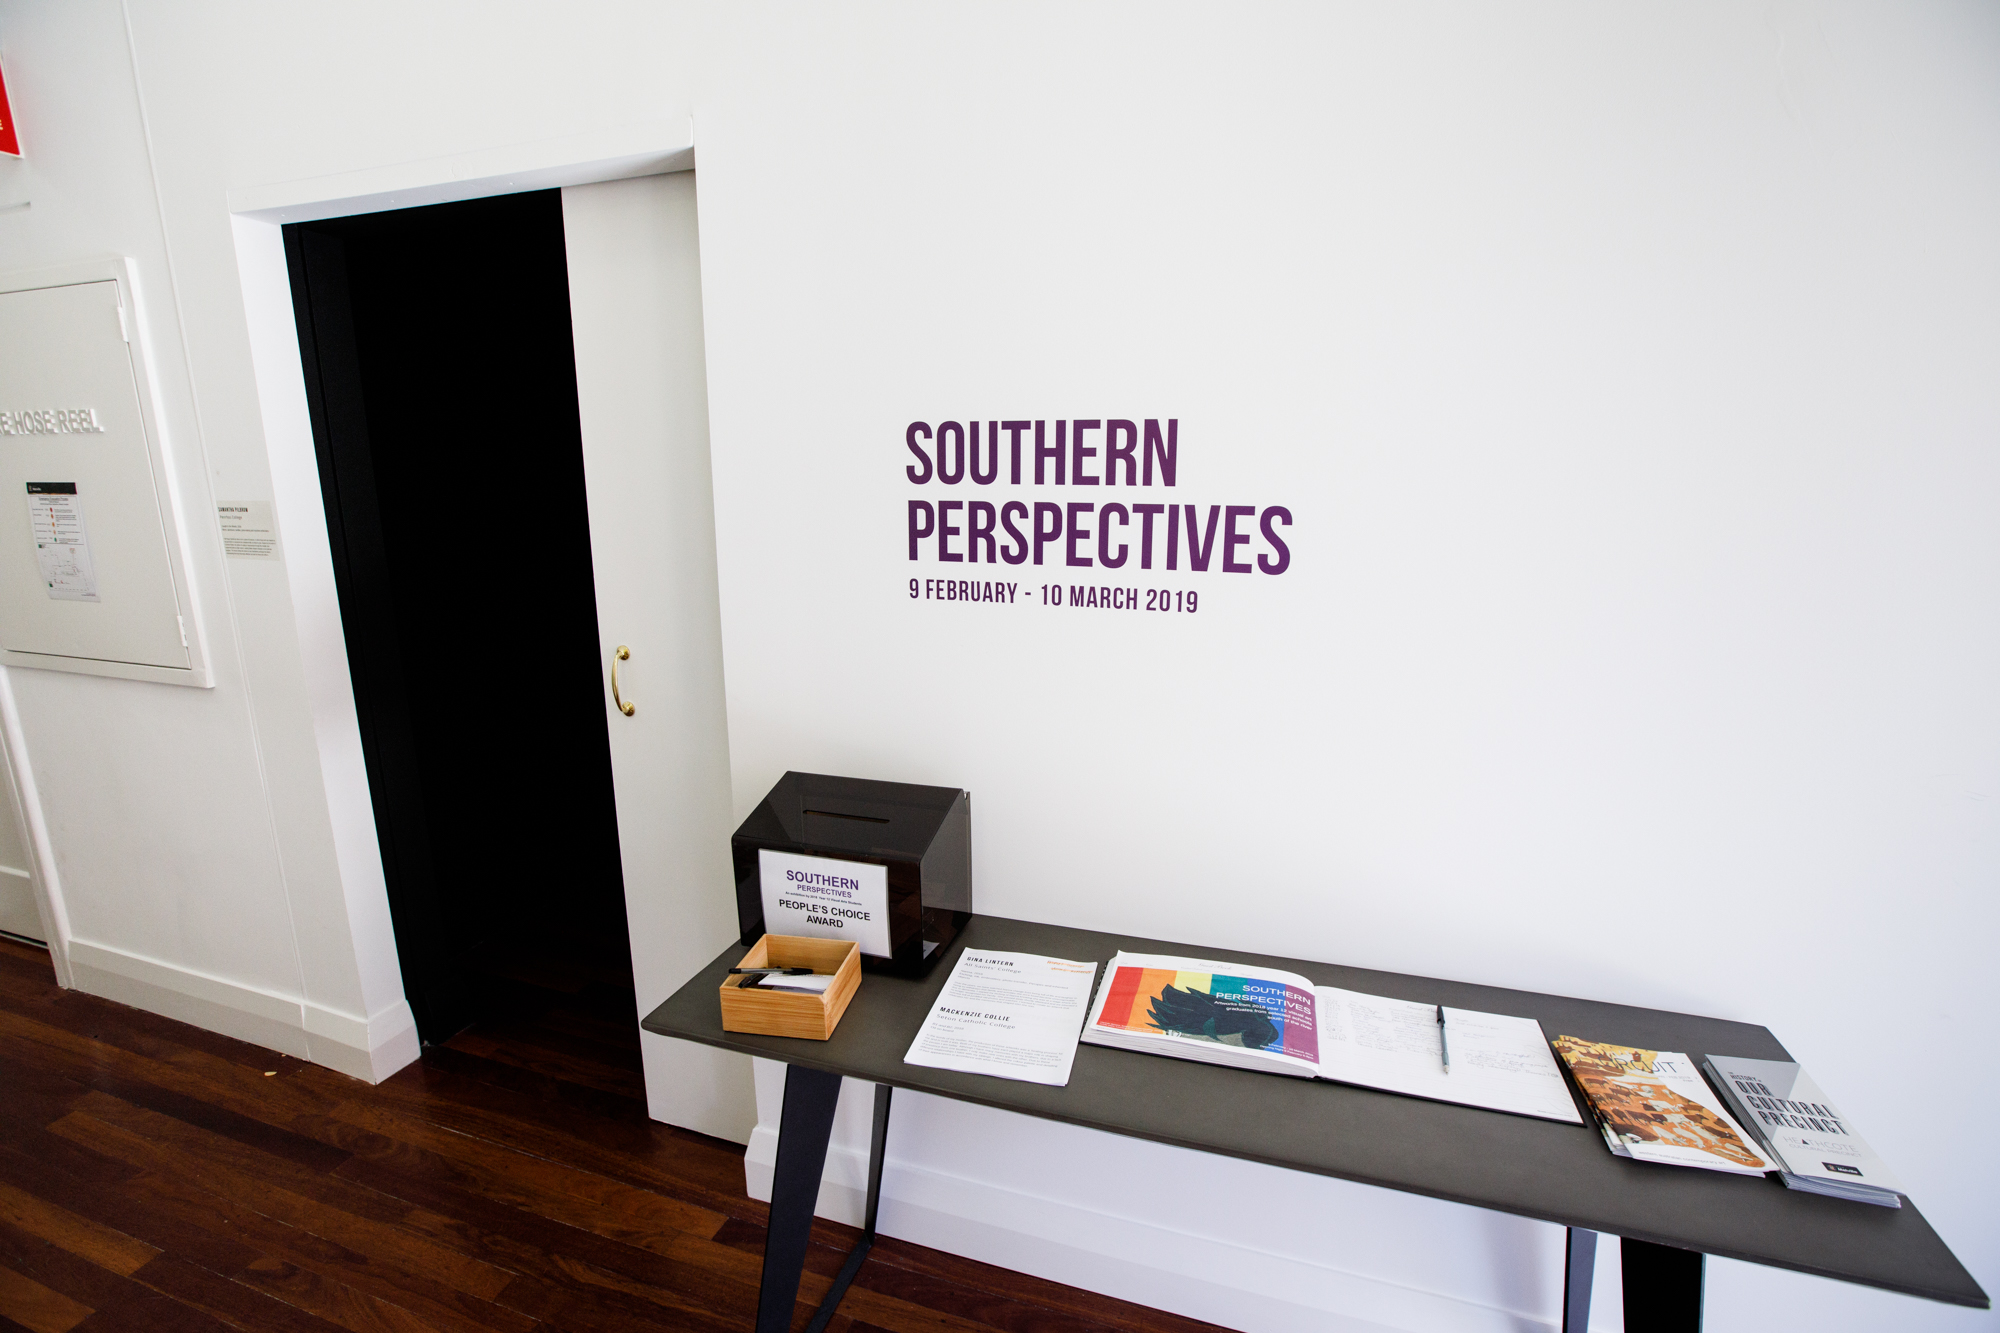 Southern Perspectives 2019